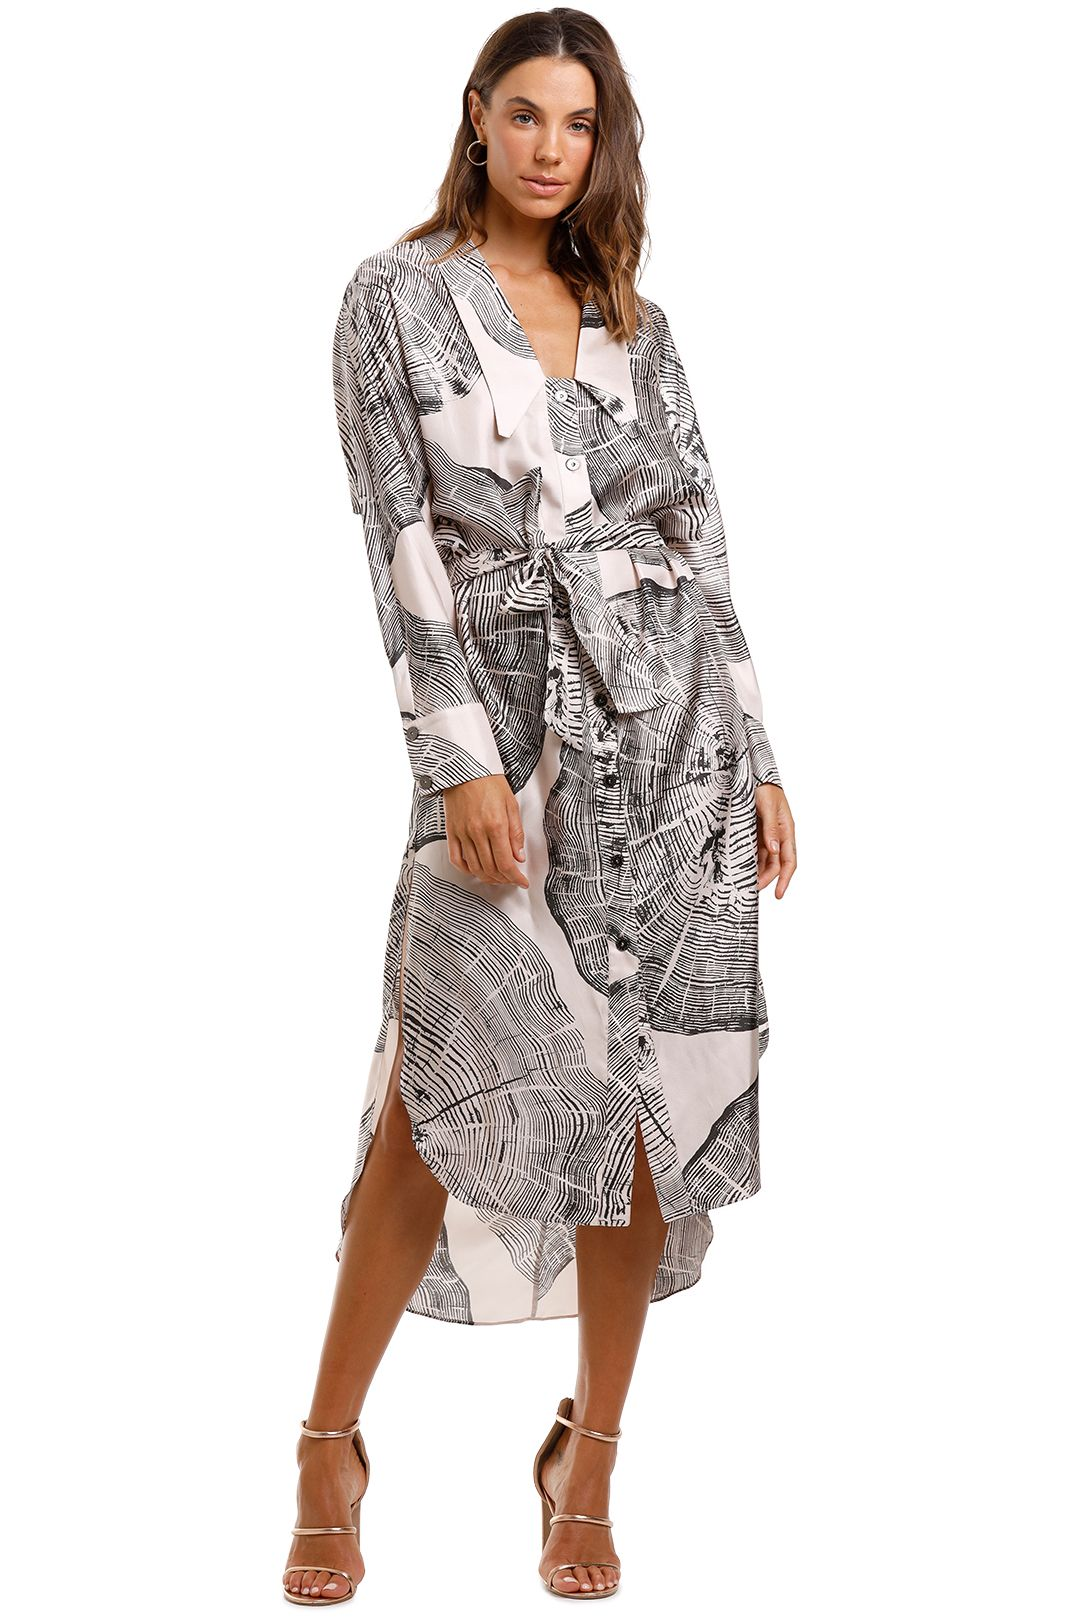 Ginger and Smart Concentric Dress Silk